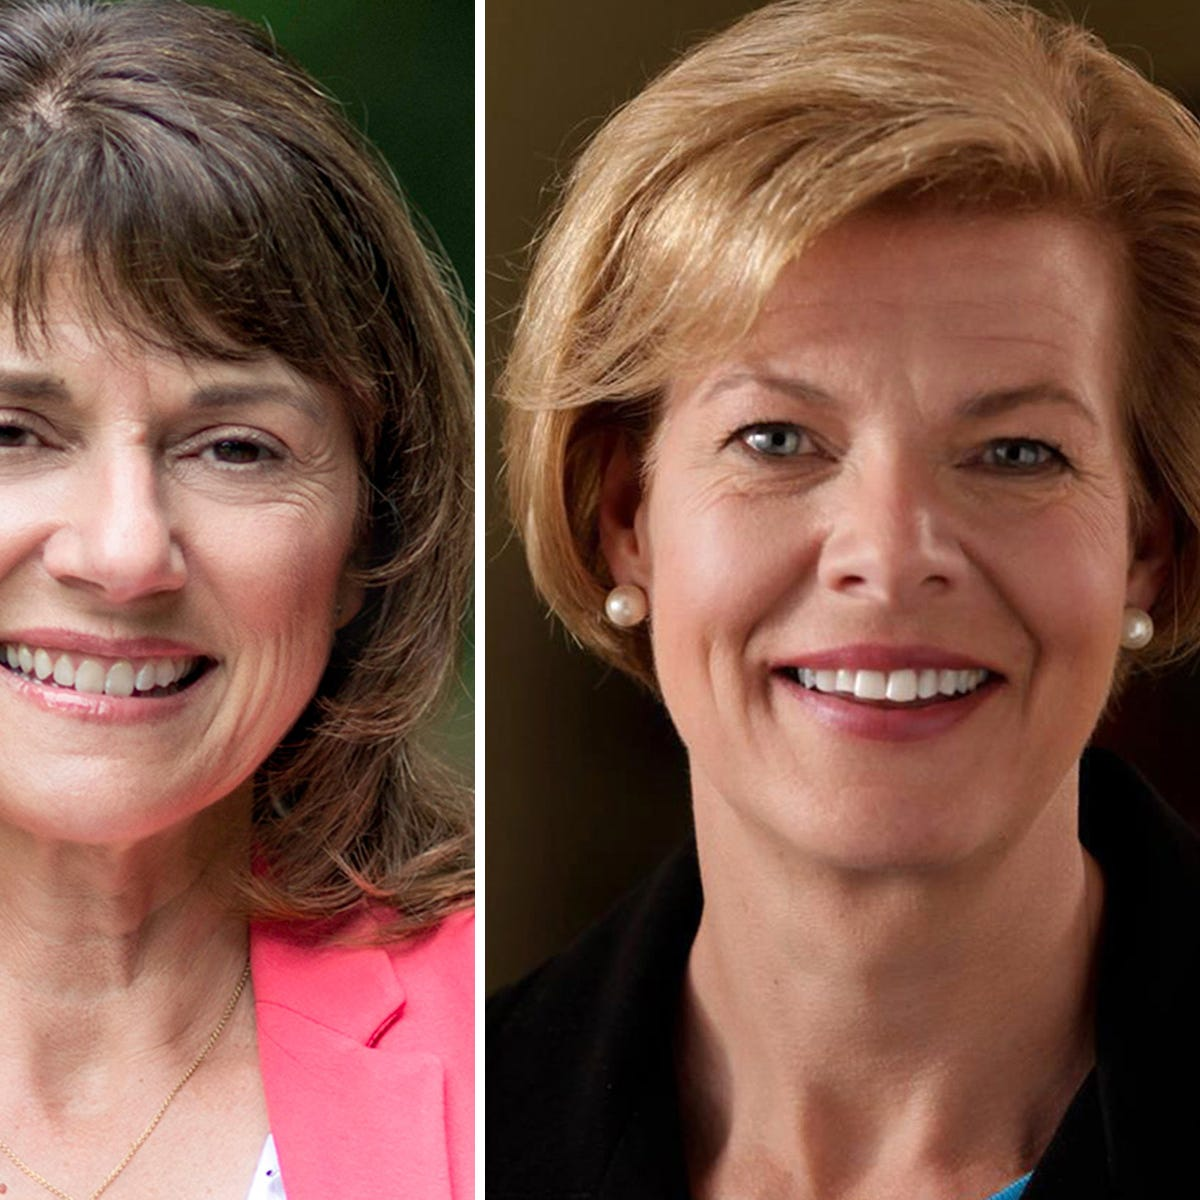 Marquette Poll: Tammy Baldwin opens wide margin over Leah Vukmir in Wisconsin U.S. Senate race